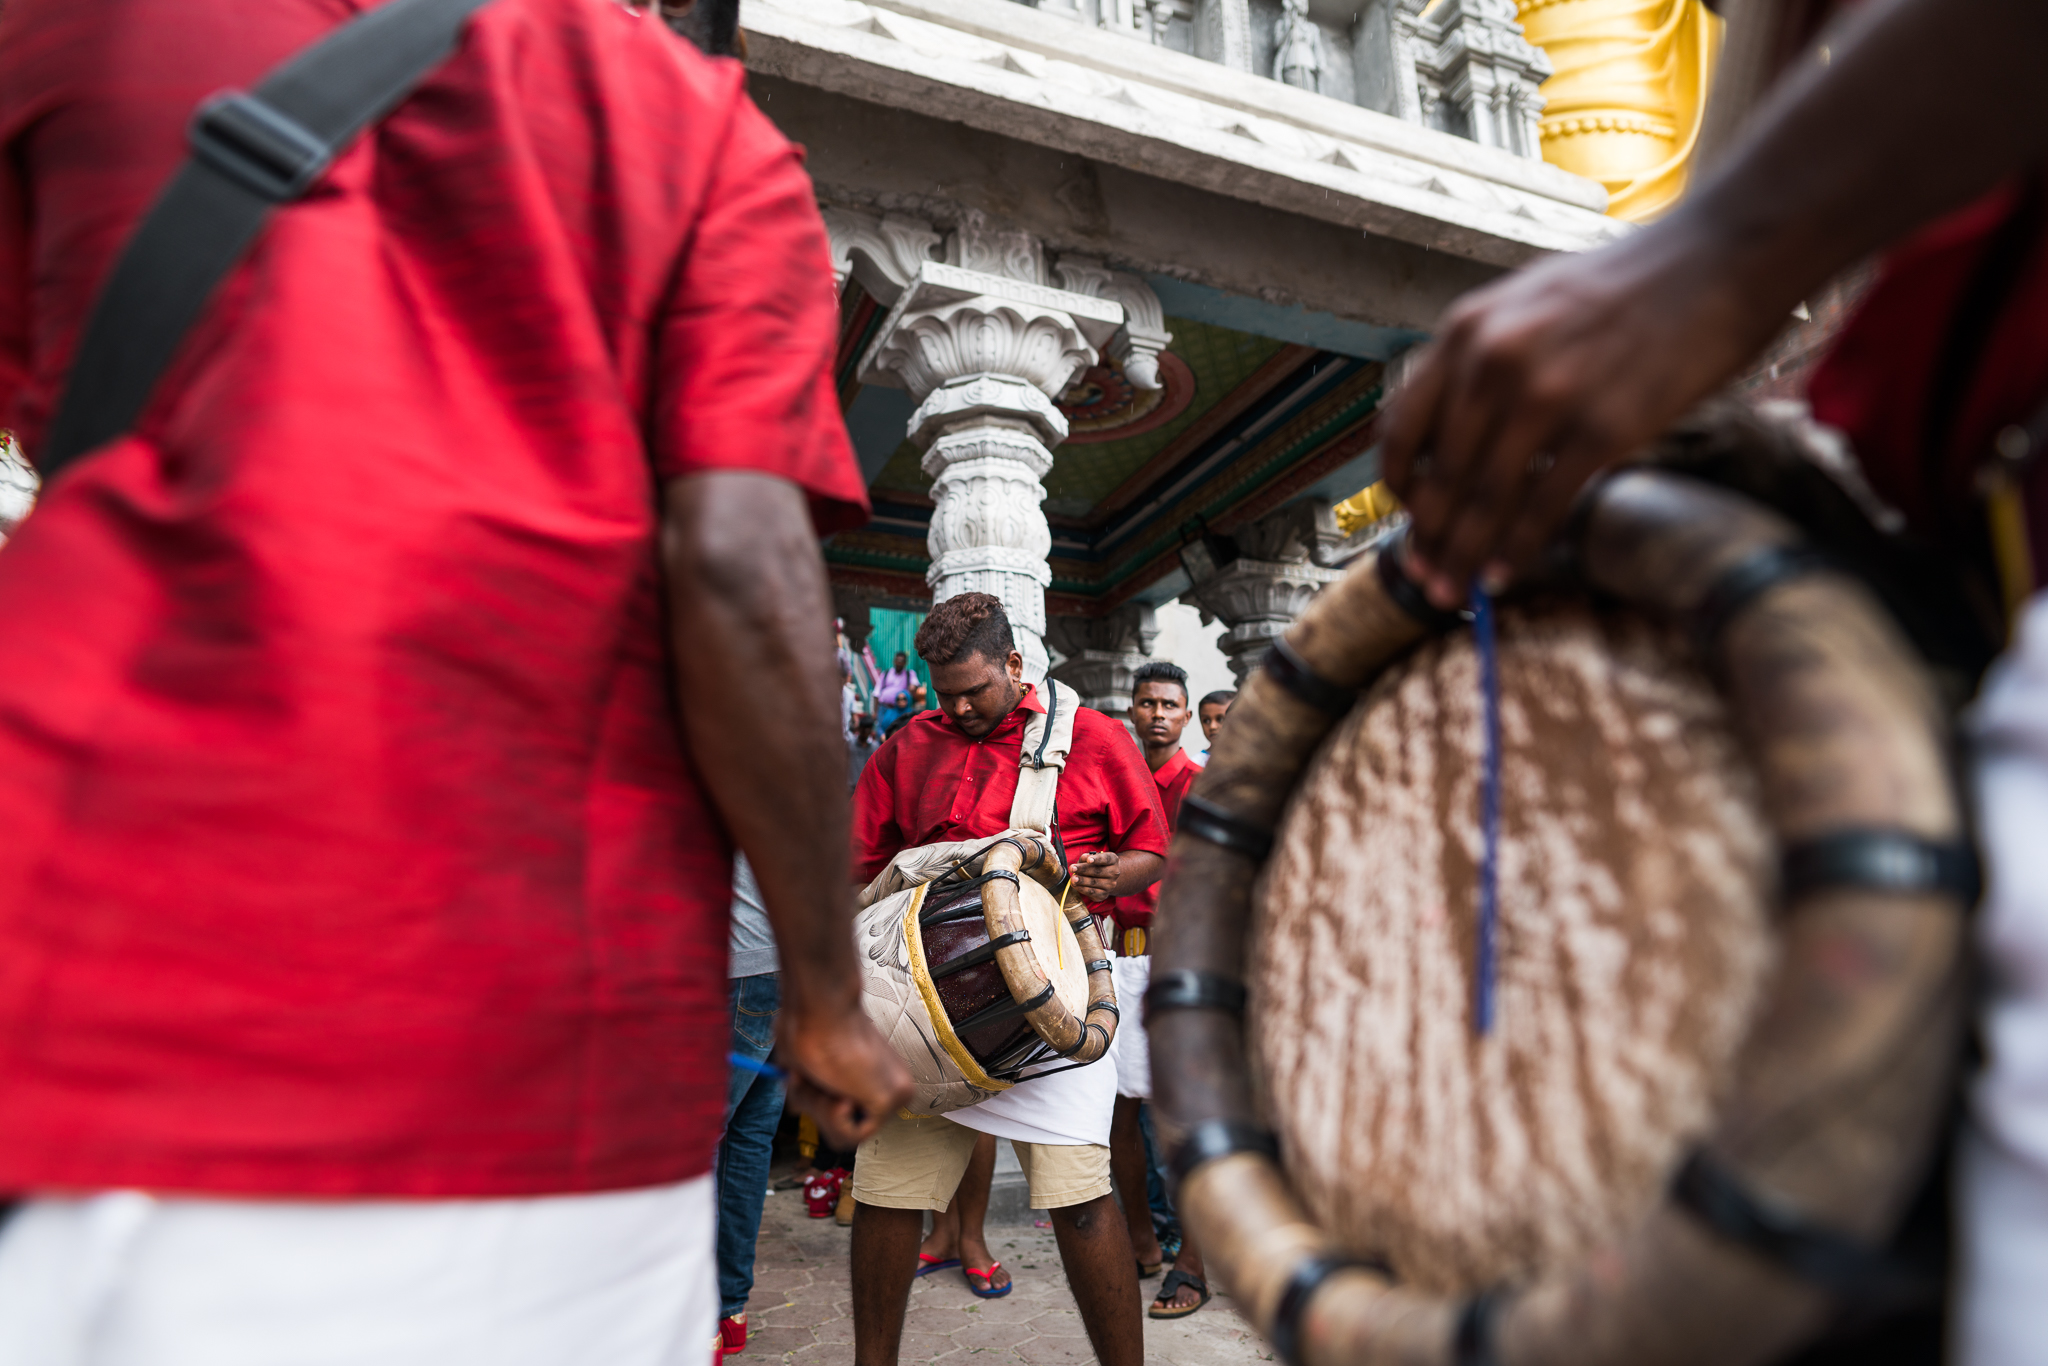 A drum circle forms around the man with the pierced back